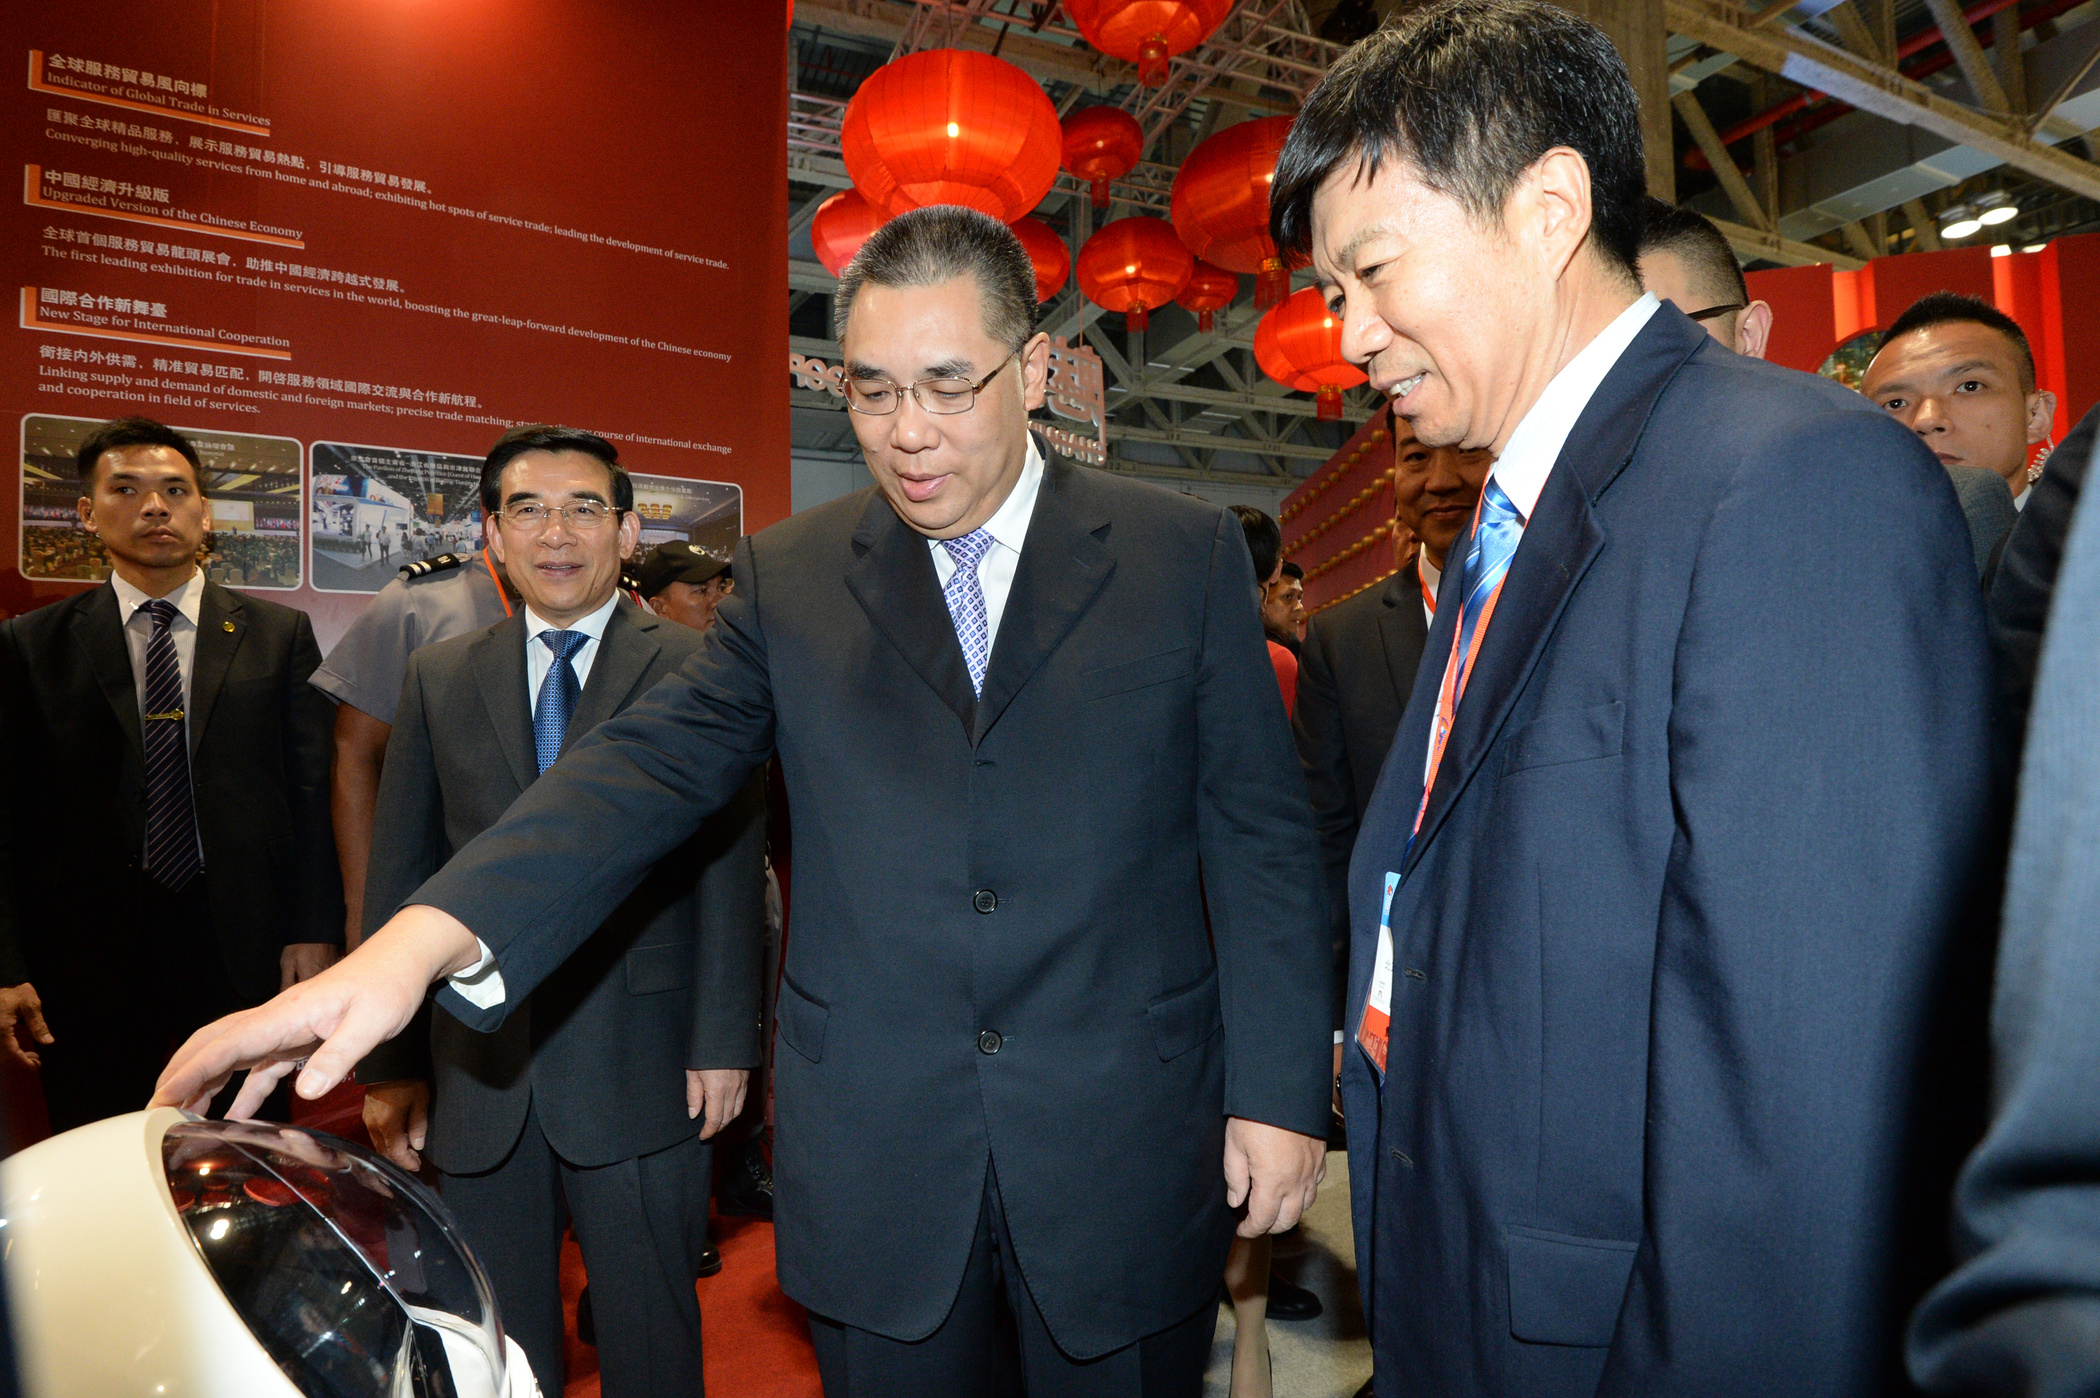 Over 50 deals signed at Macau International Fair